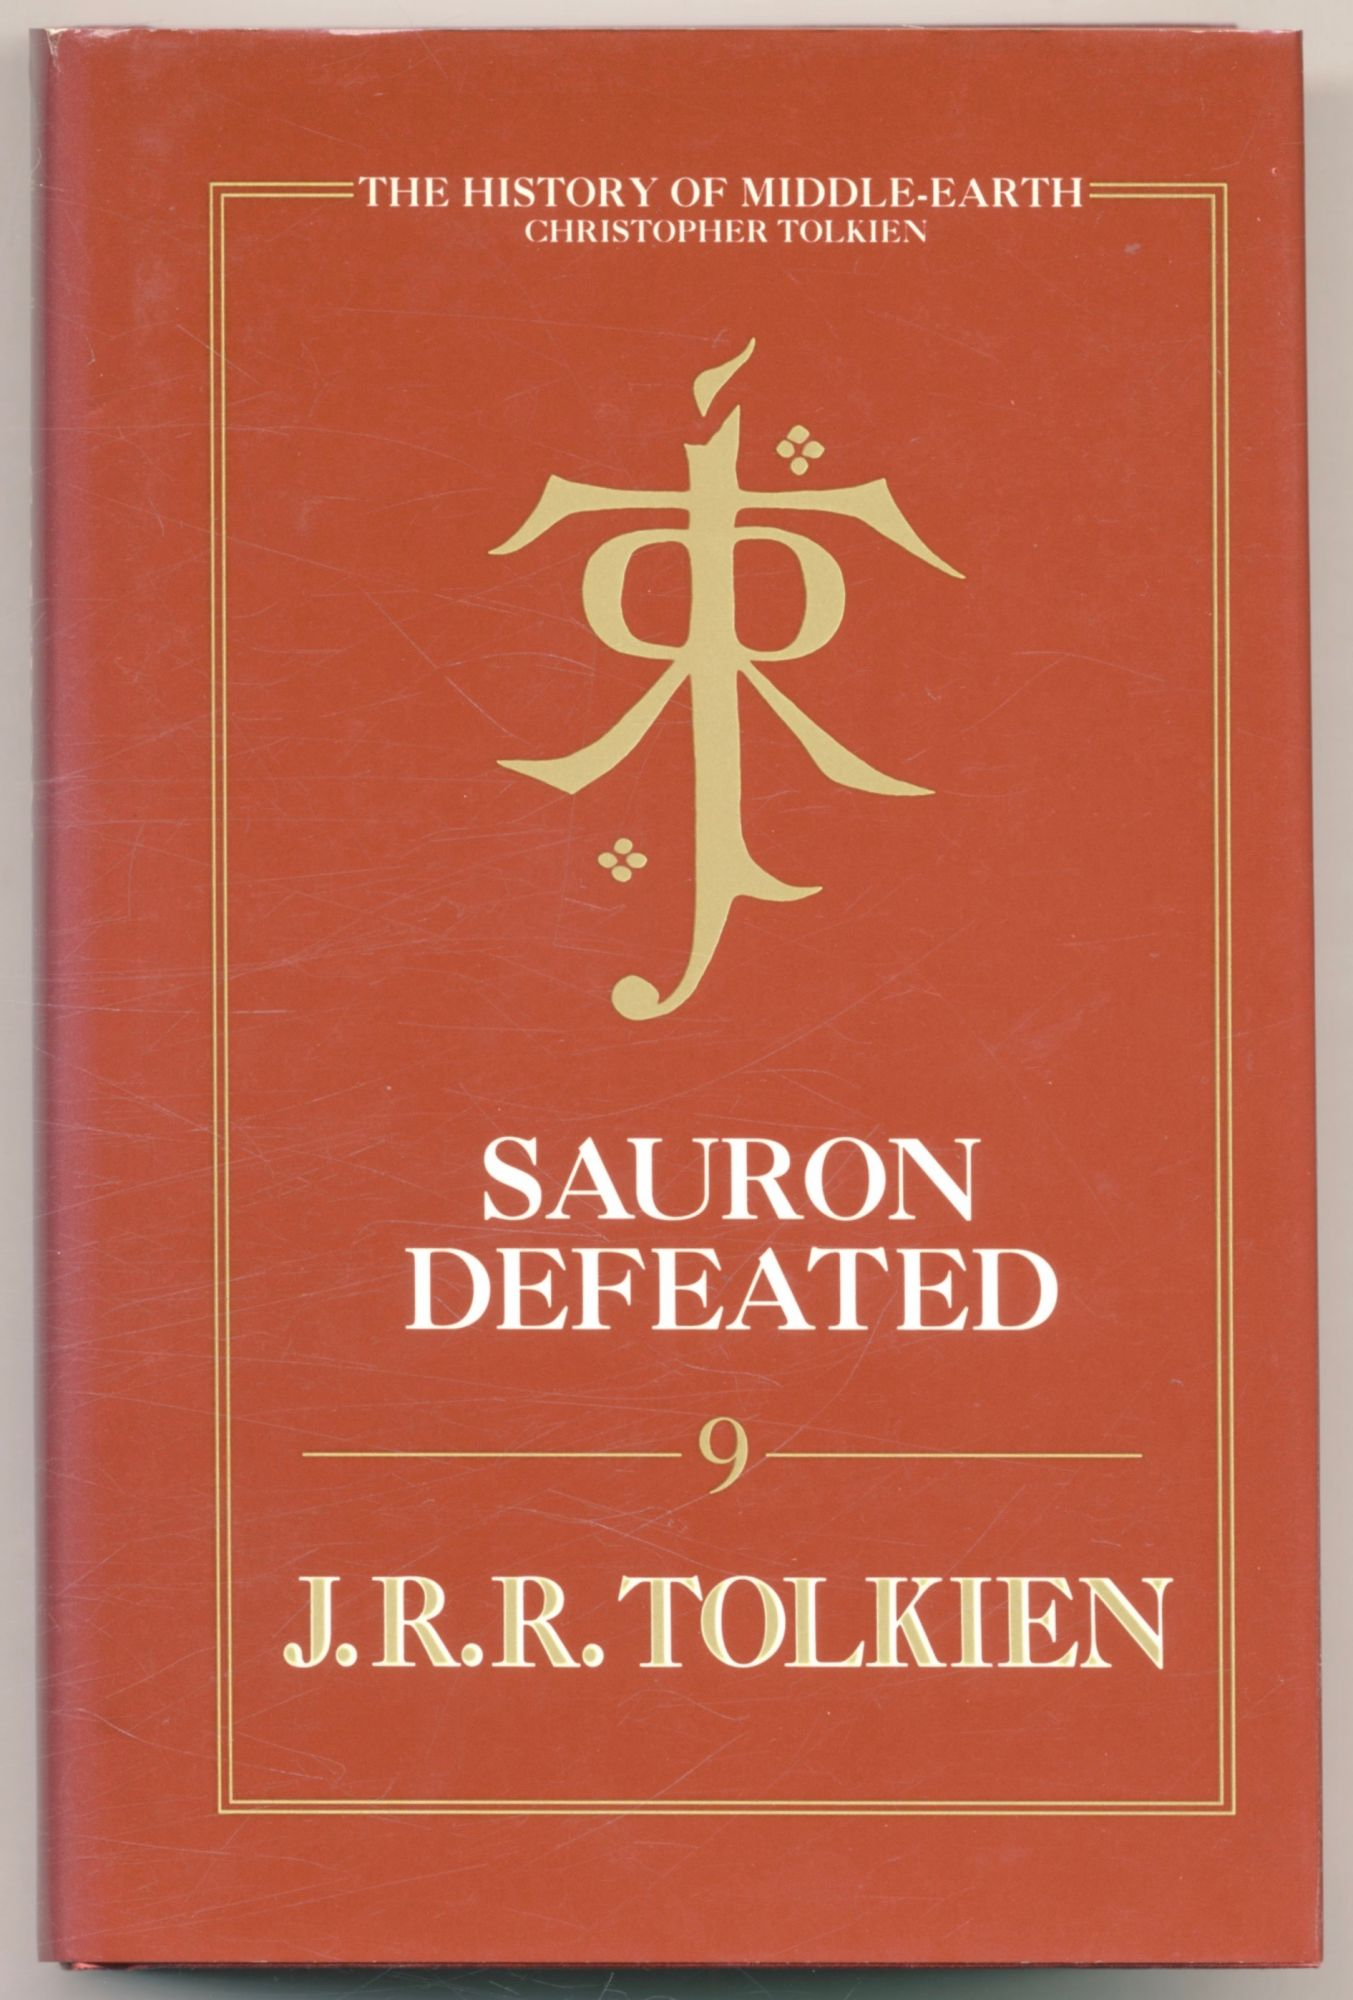 Sauron Defeated. J. R. R. Tolkien, Christopher Tolkien.